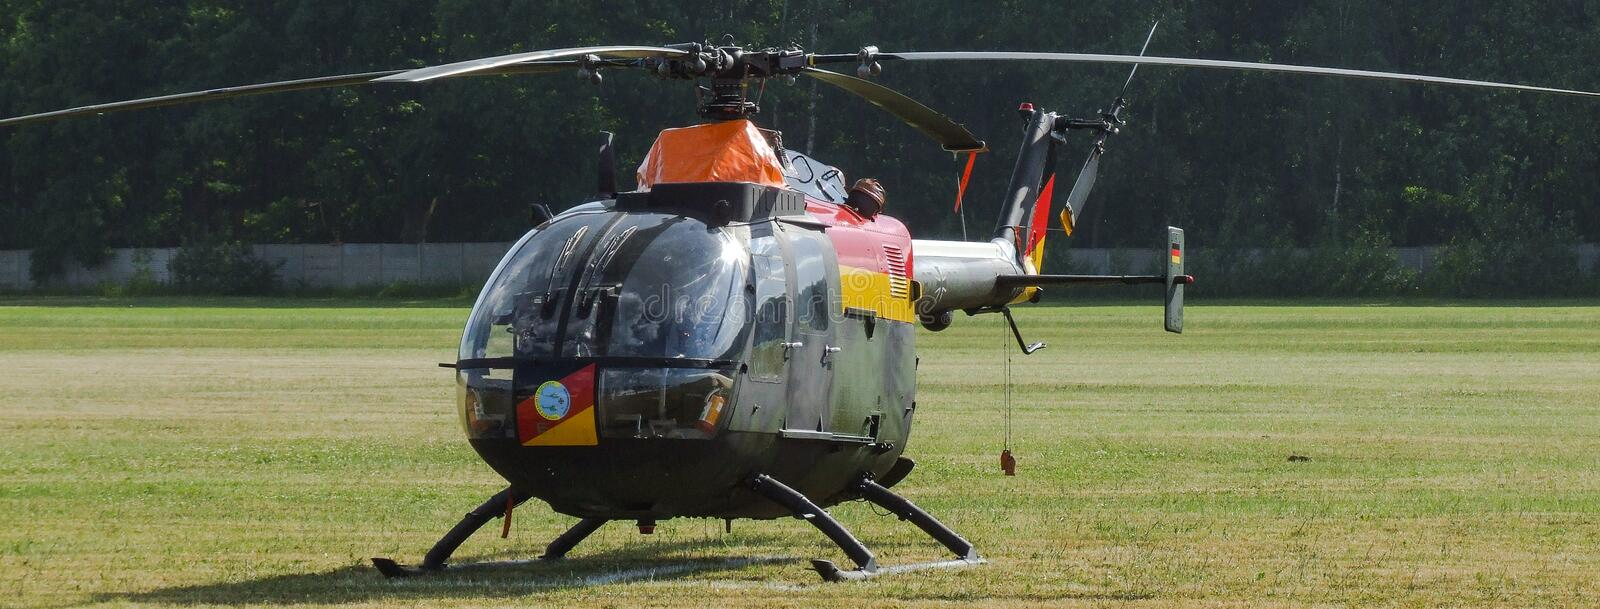 Eurocopter MBB Bo-105 of german airforce on grass airfield. stock images